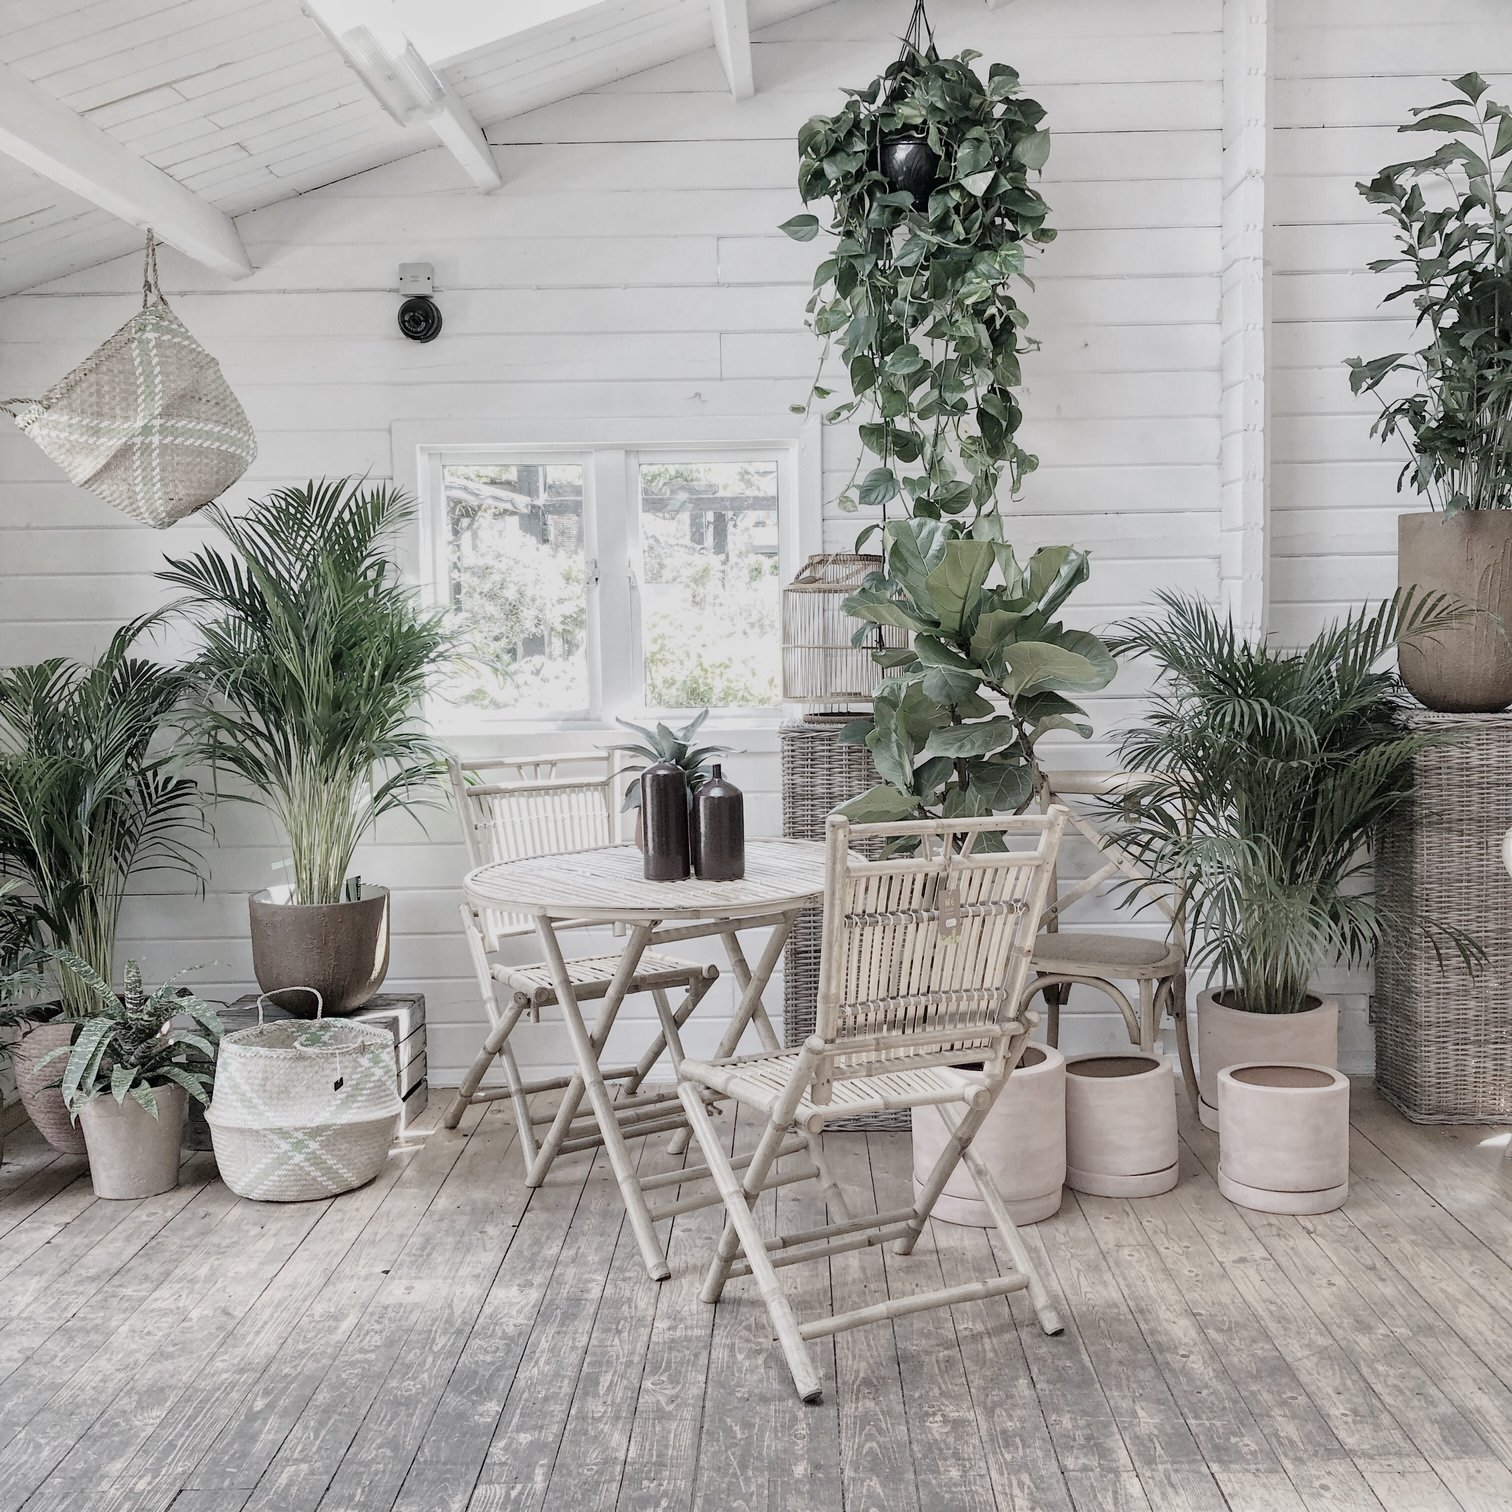 6 Leafy London Plant Shops to Escape In